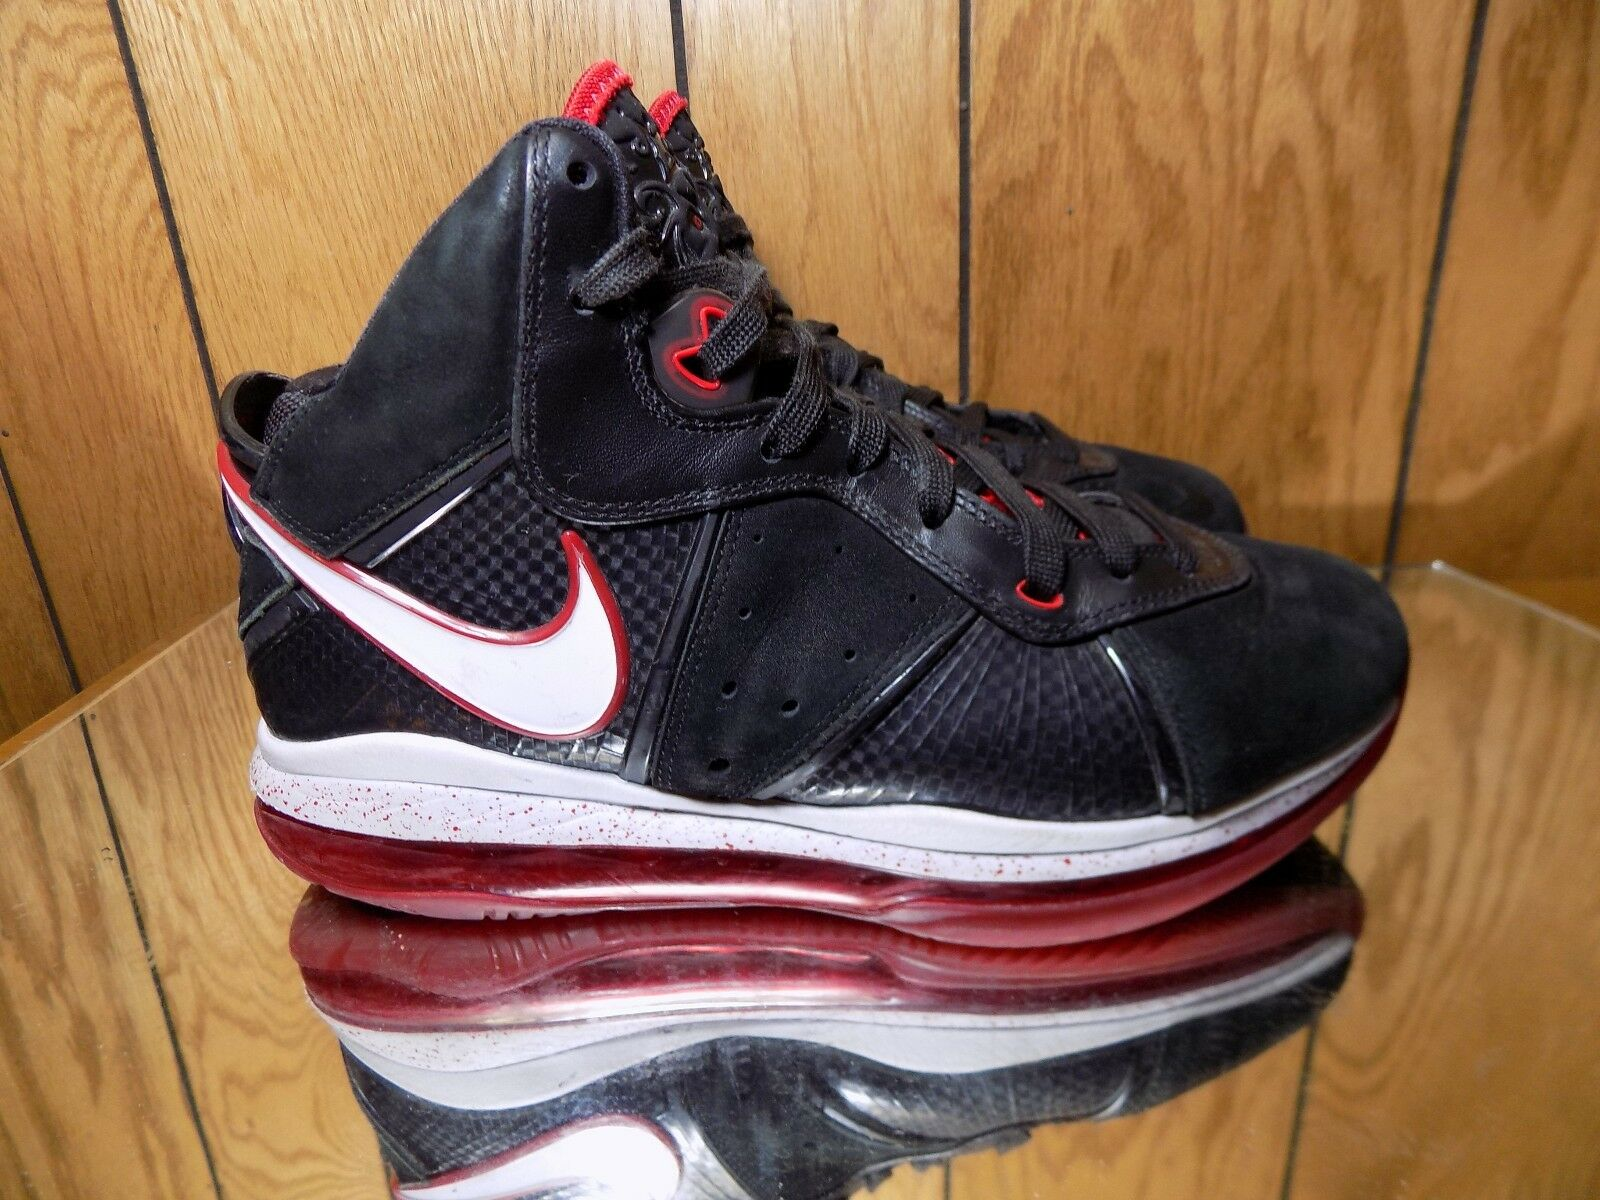 2010 Nike Air Max LEBRON VIII 8 BLACK WHITE SPORT RED GOLD BRED 417098-002 7.5